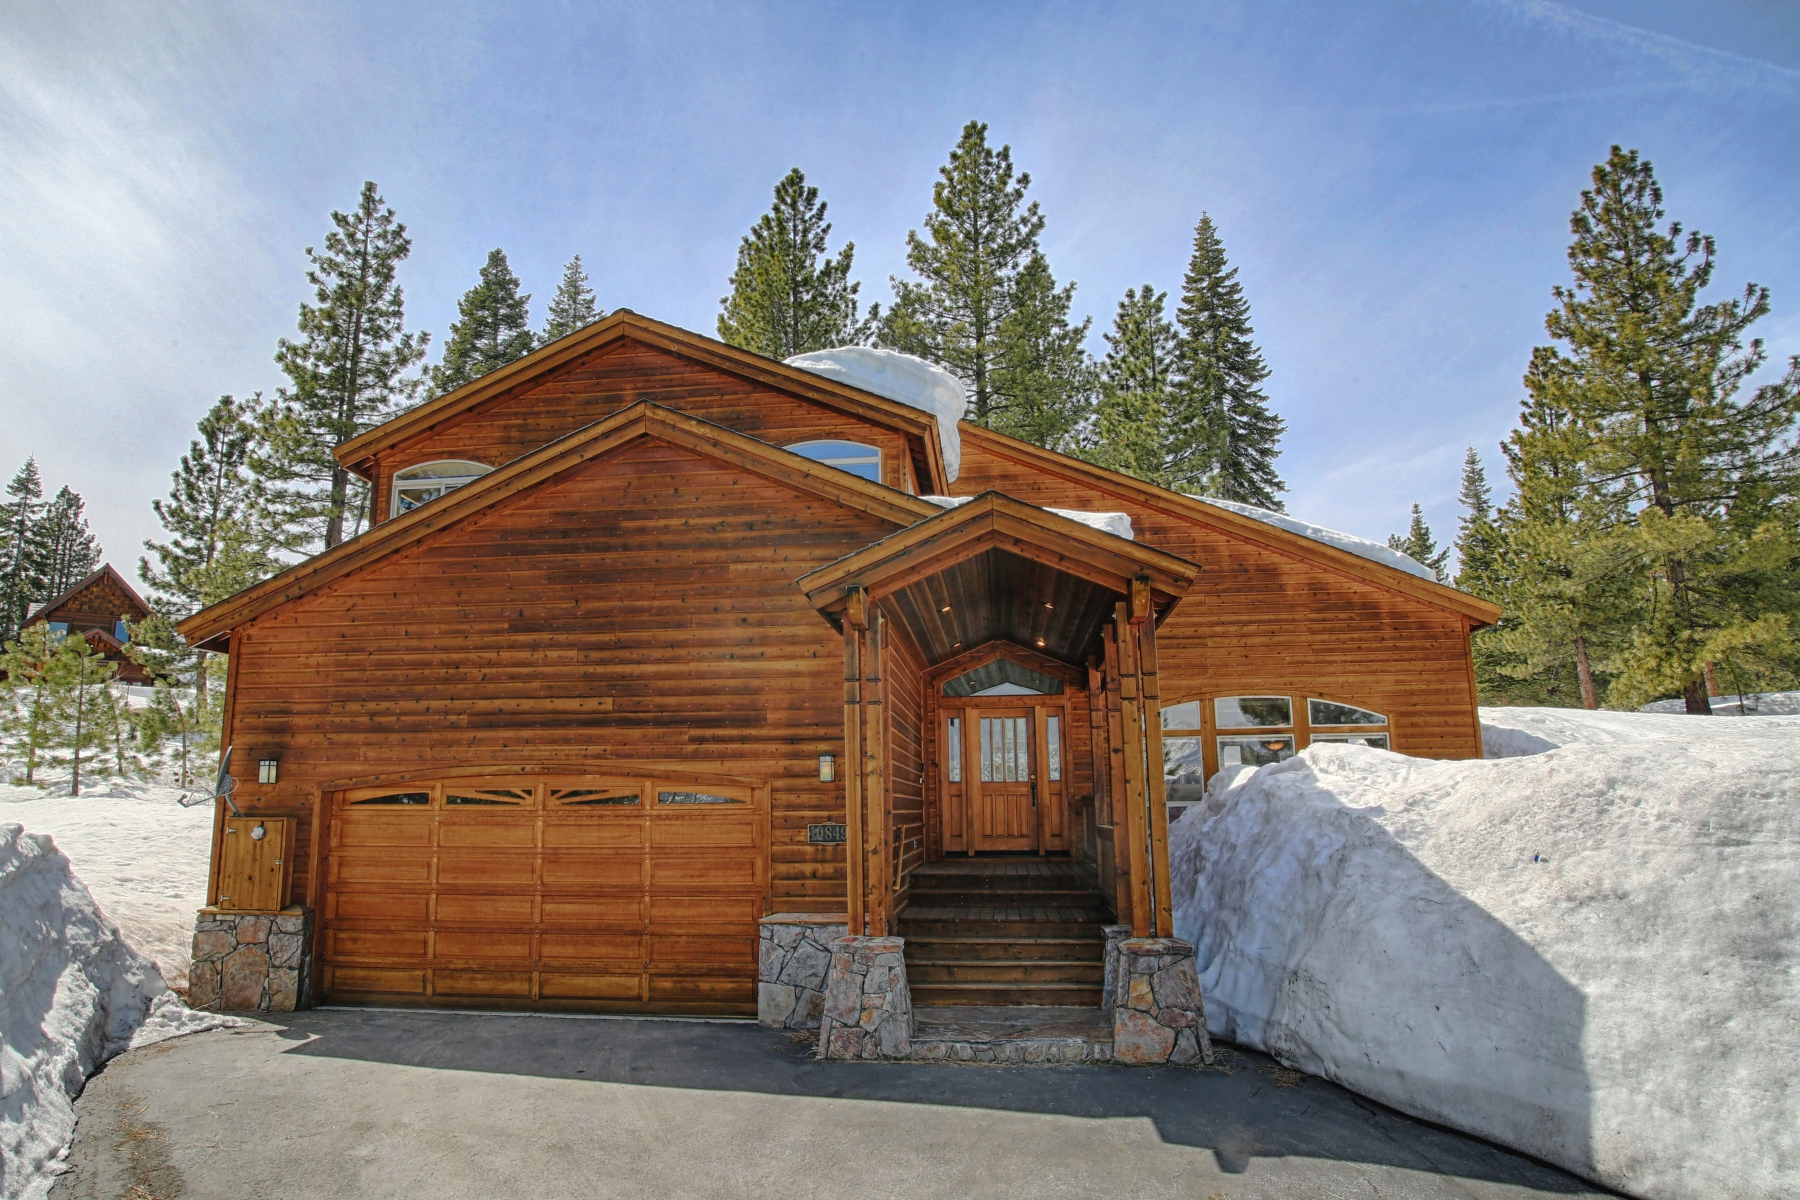 Single Family Home for Active at 10849 Mougle Lane, Truckee, California 96161 Truckee, California 96161 United States